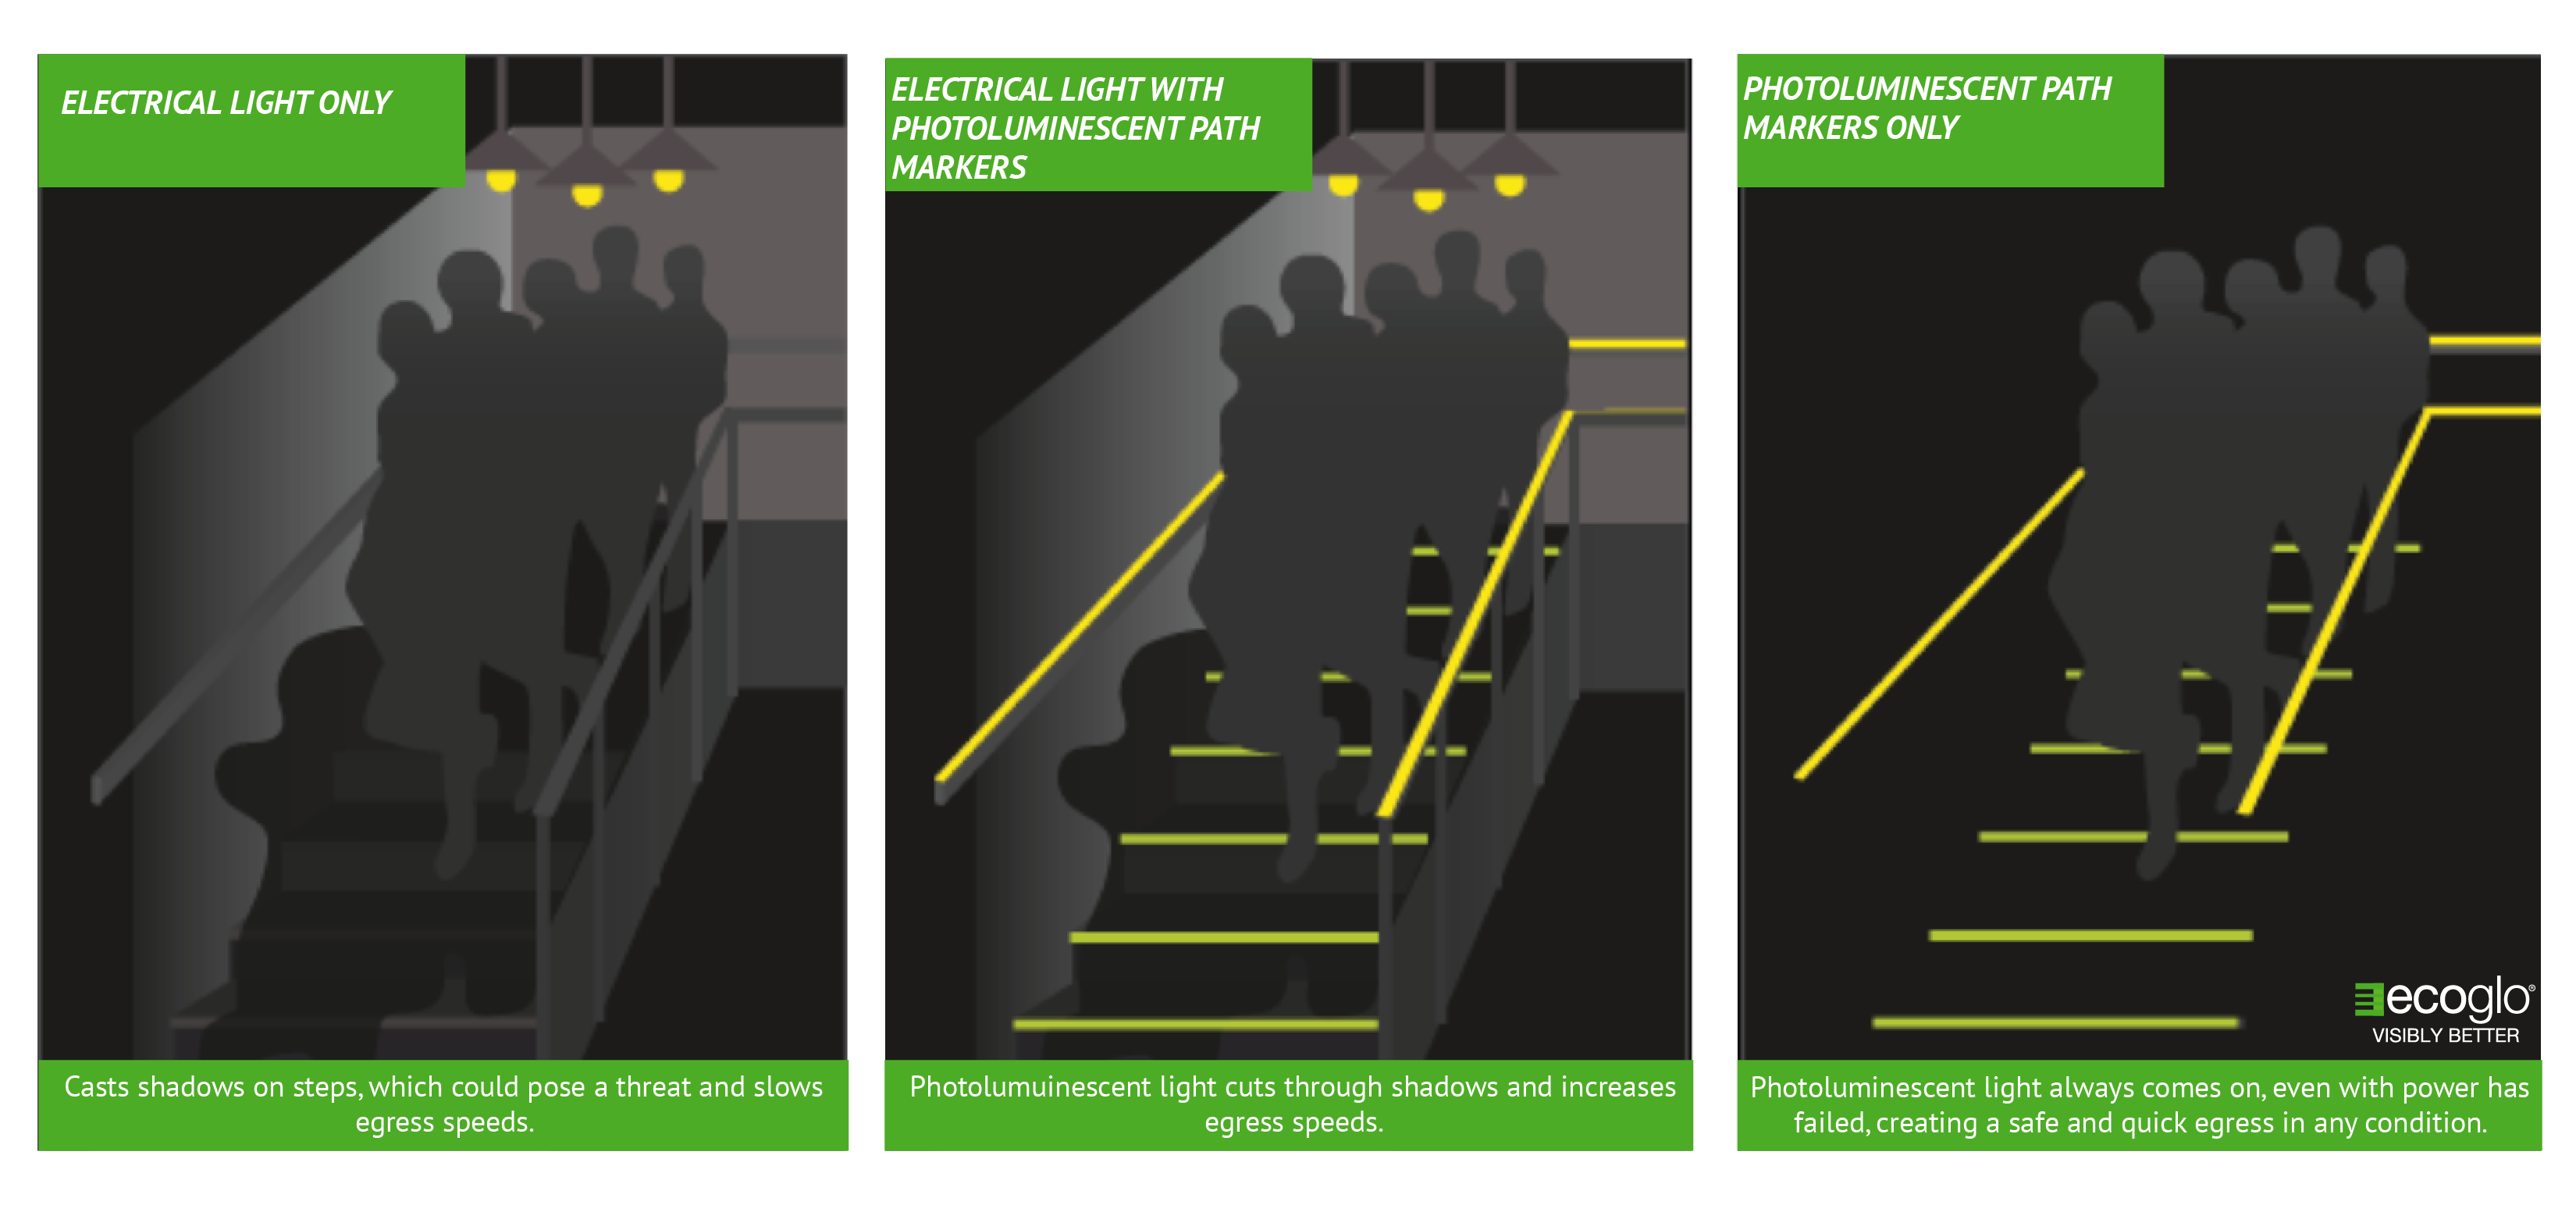 Best Practices for Luminous Egress Path Markings